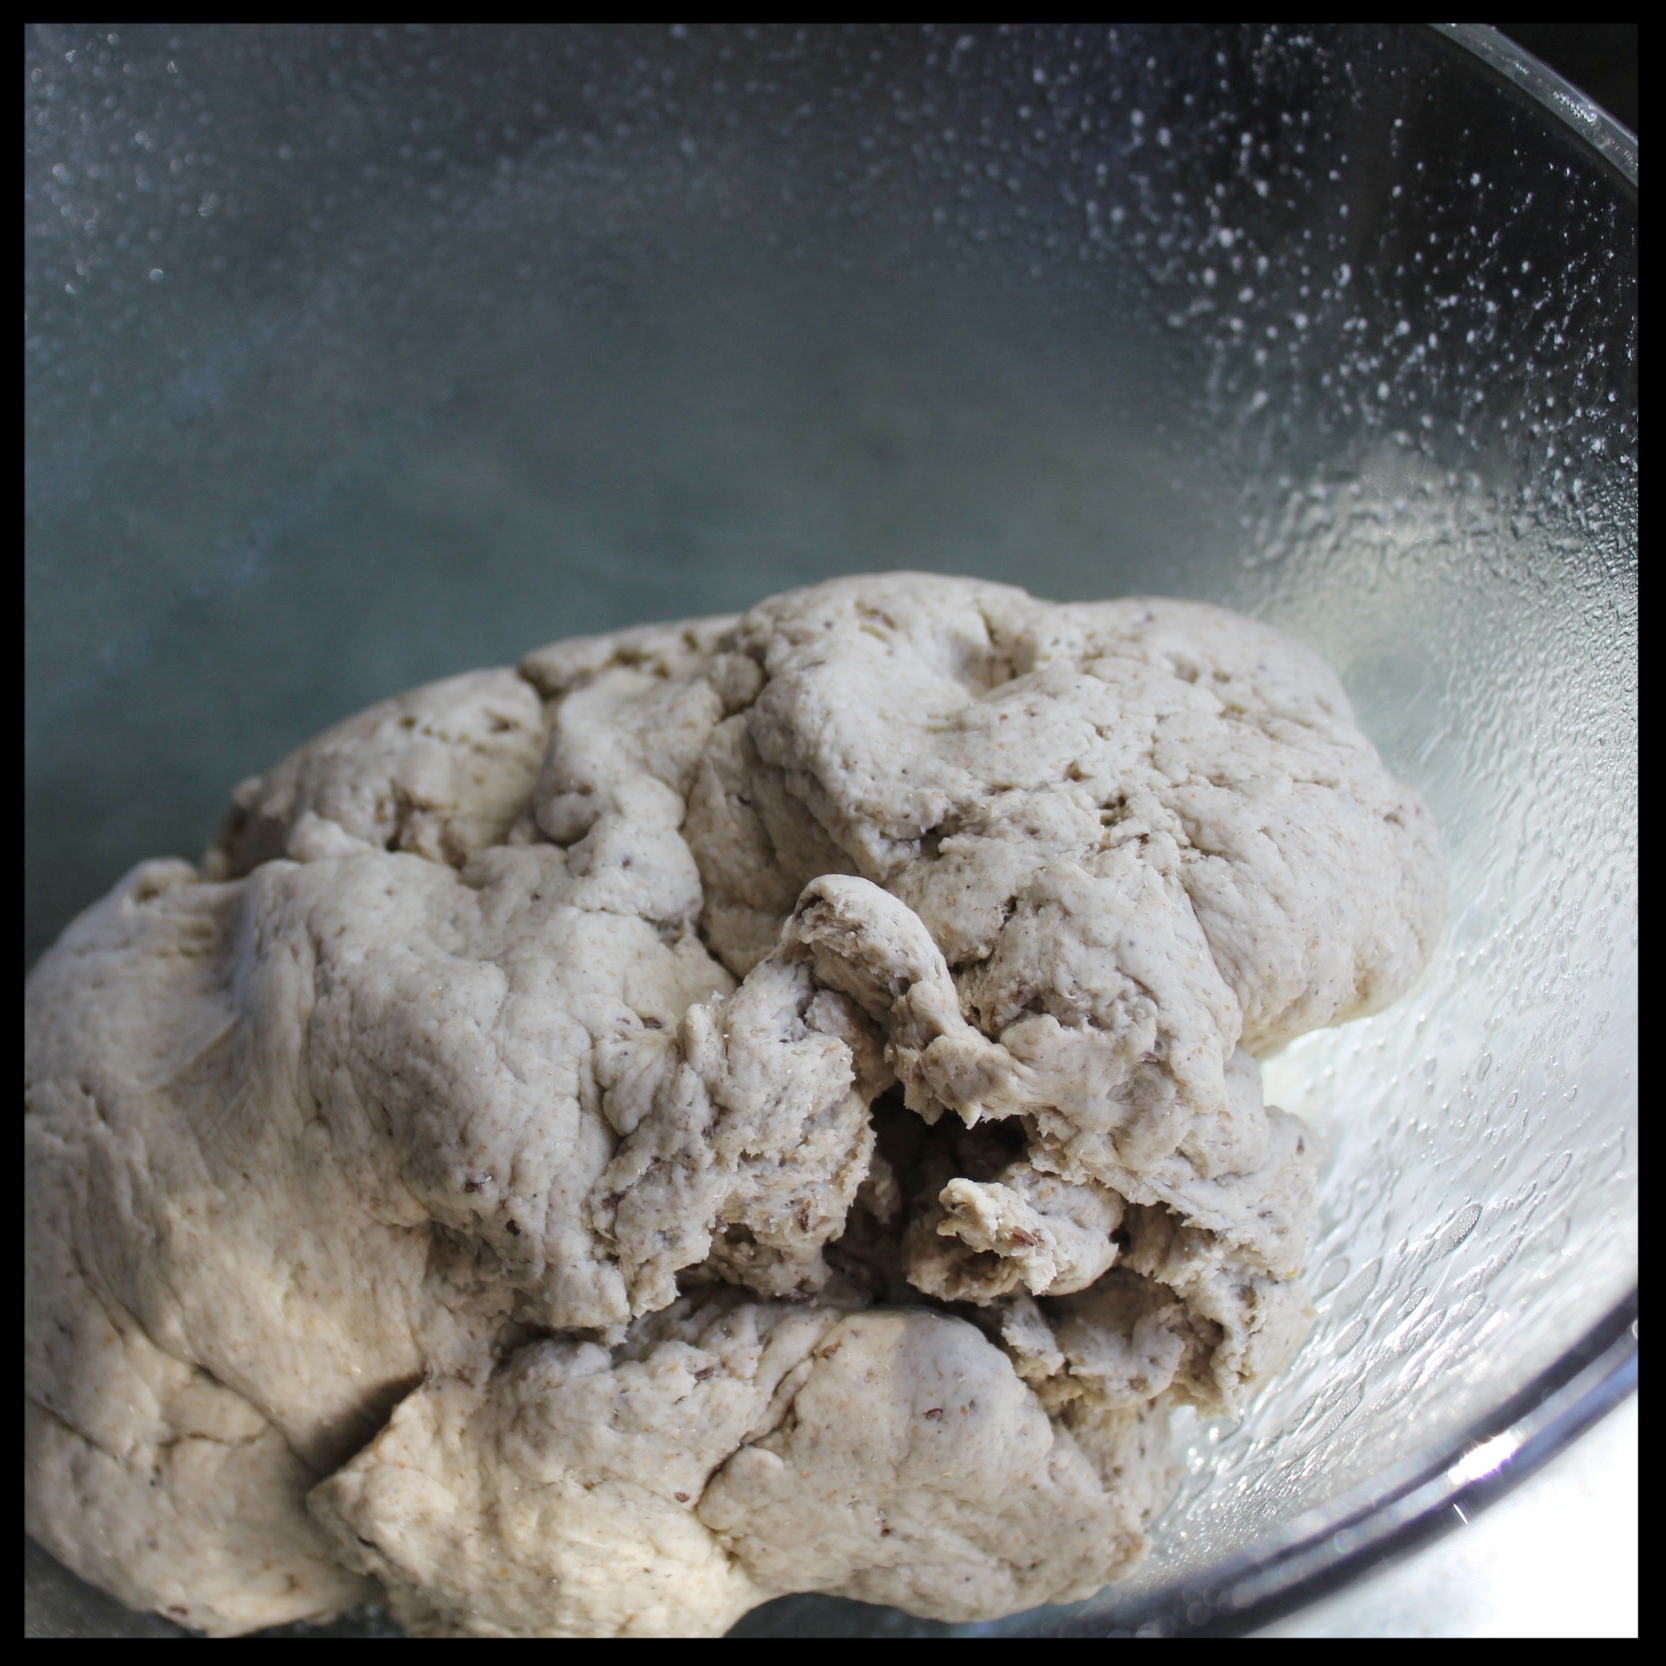 9. Plop that dough down in the greased bowl.